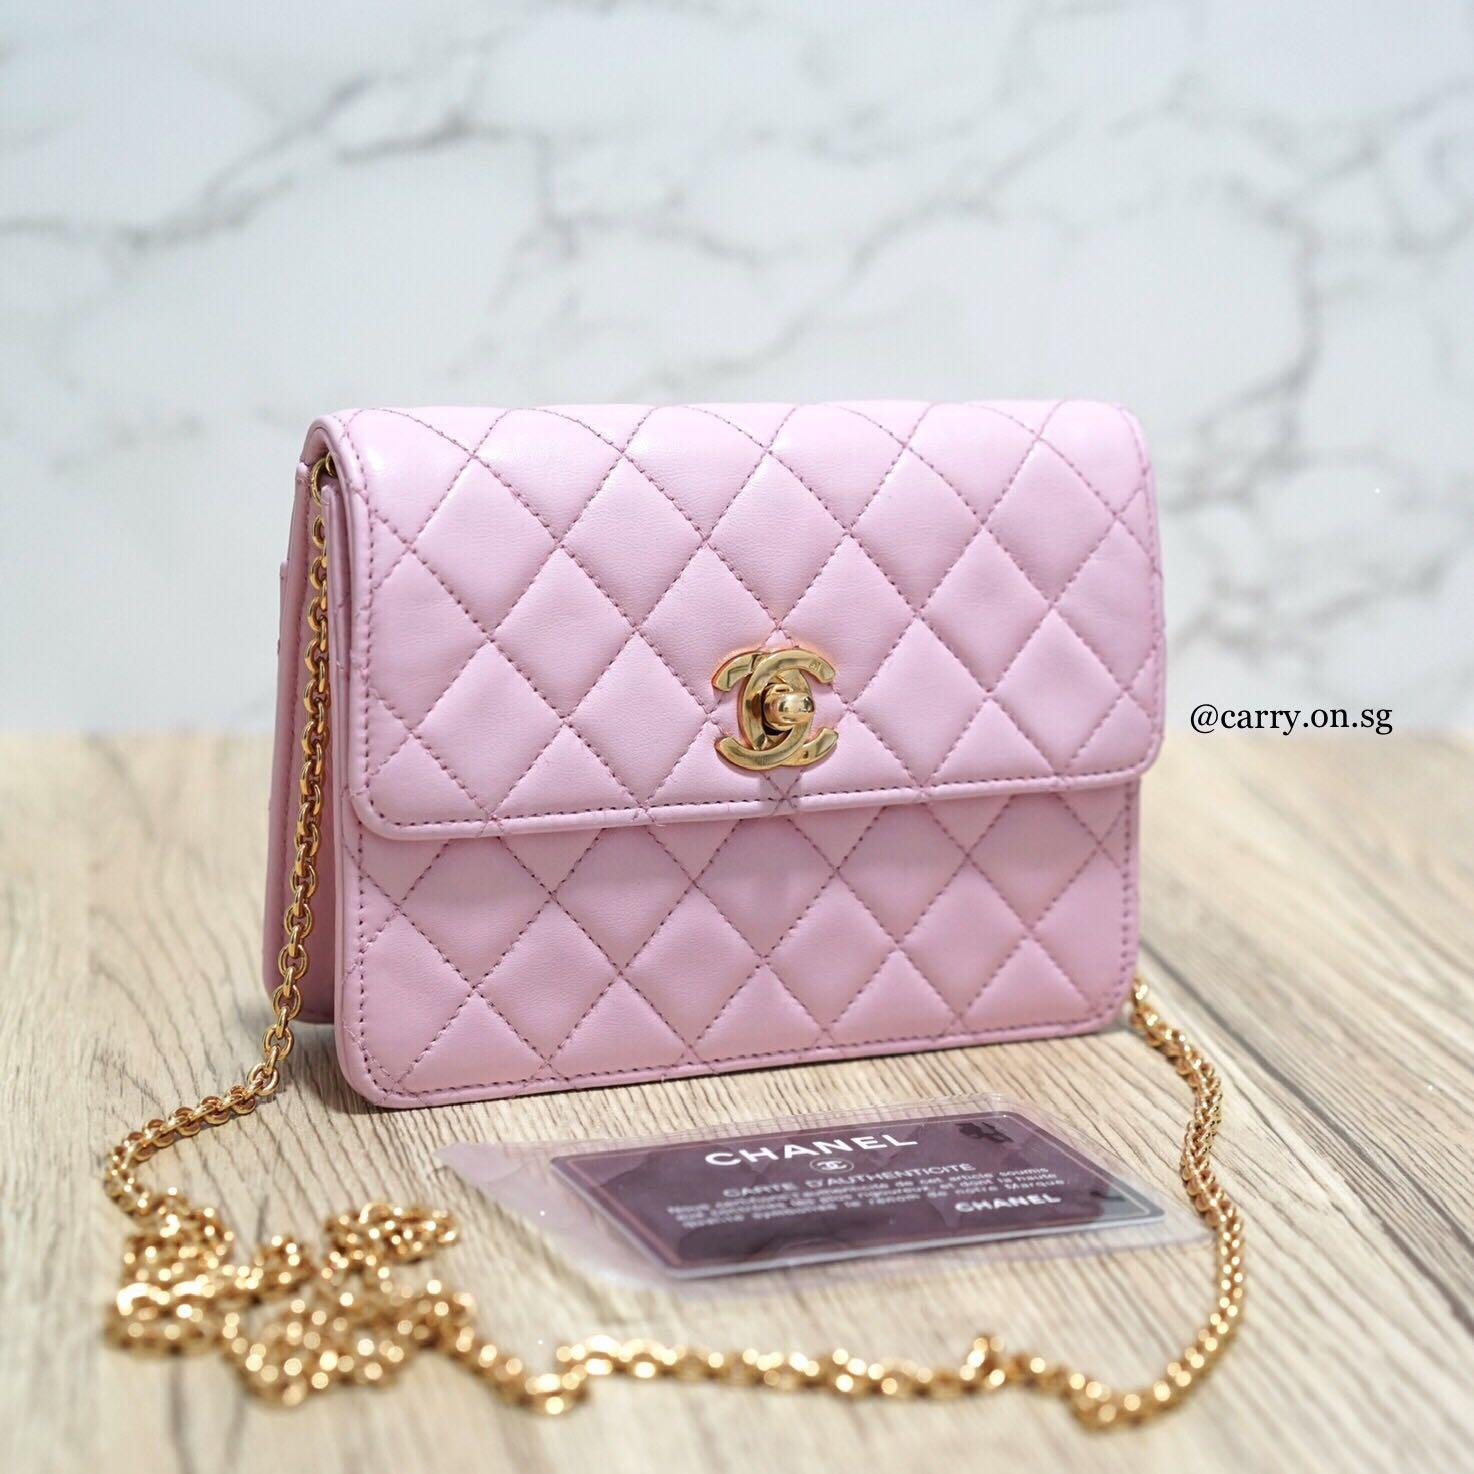 Chanel Vintage Mini Half Flap Crossbody Bag